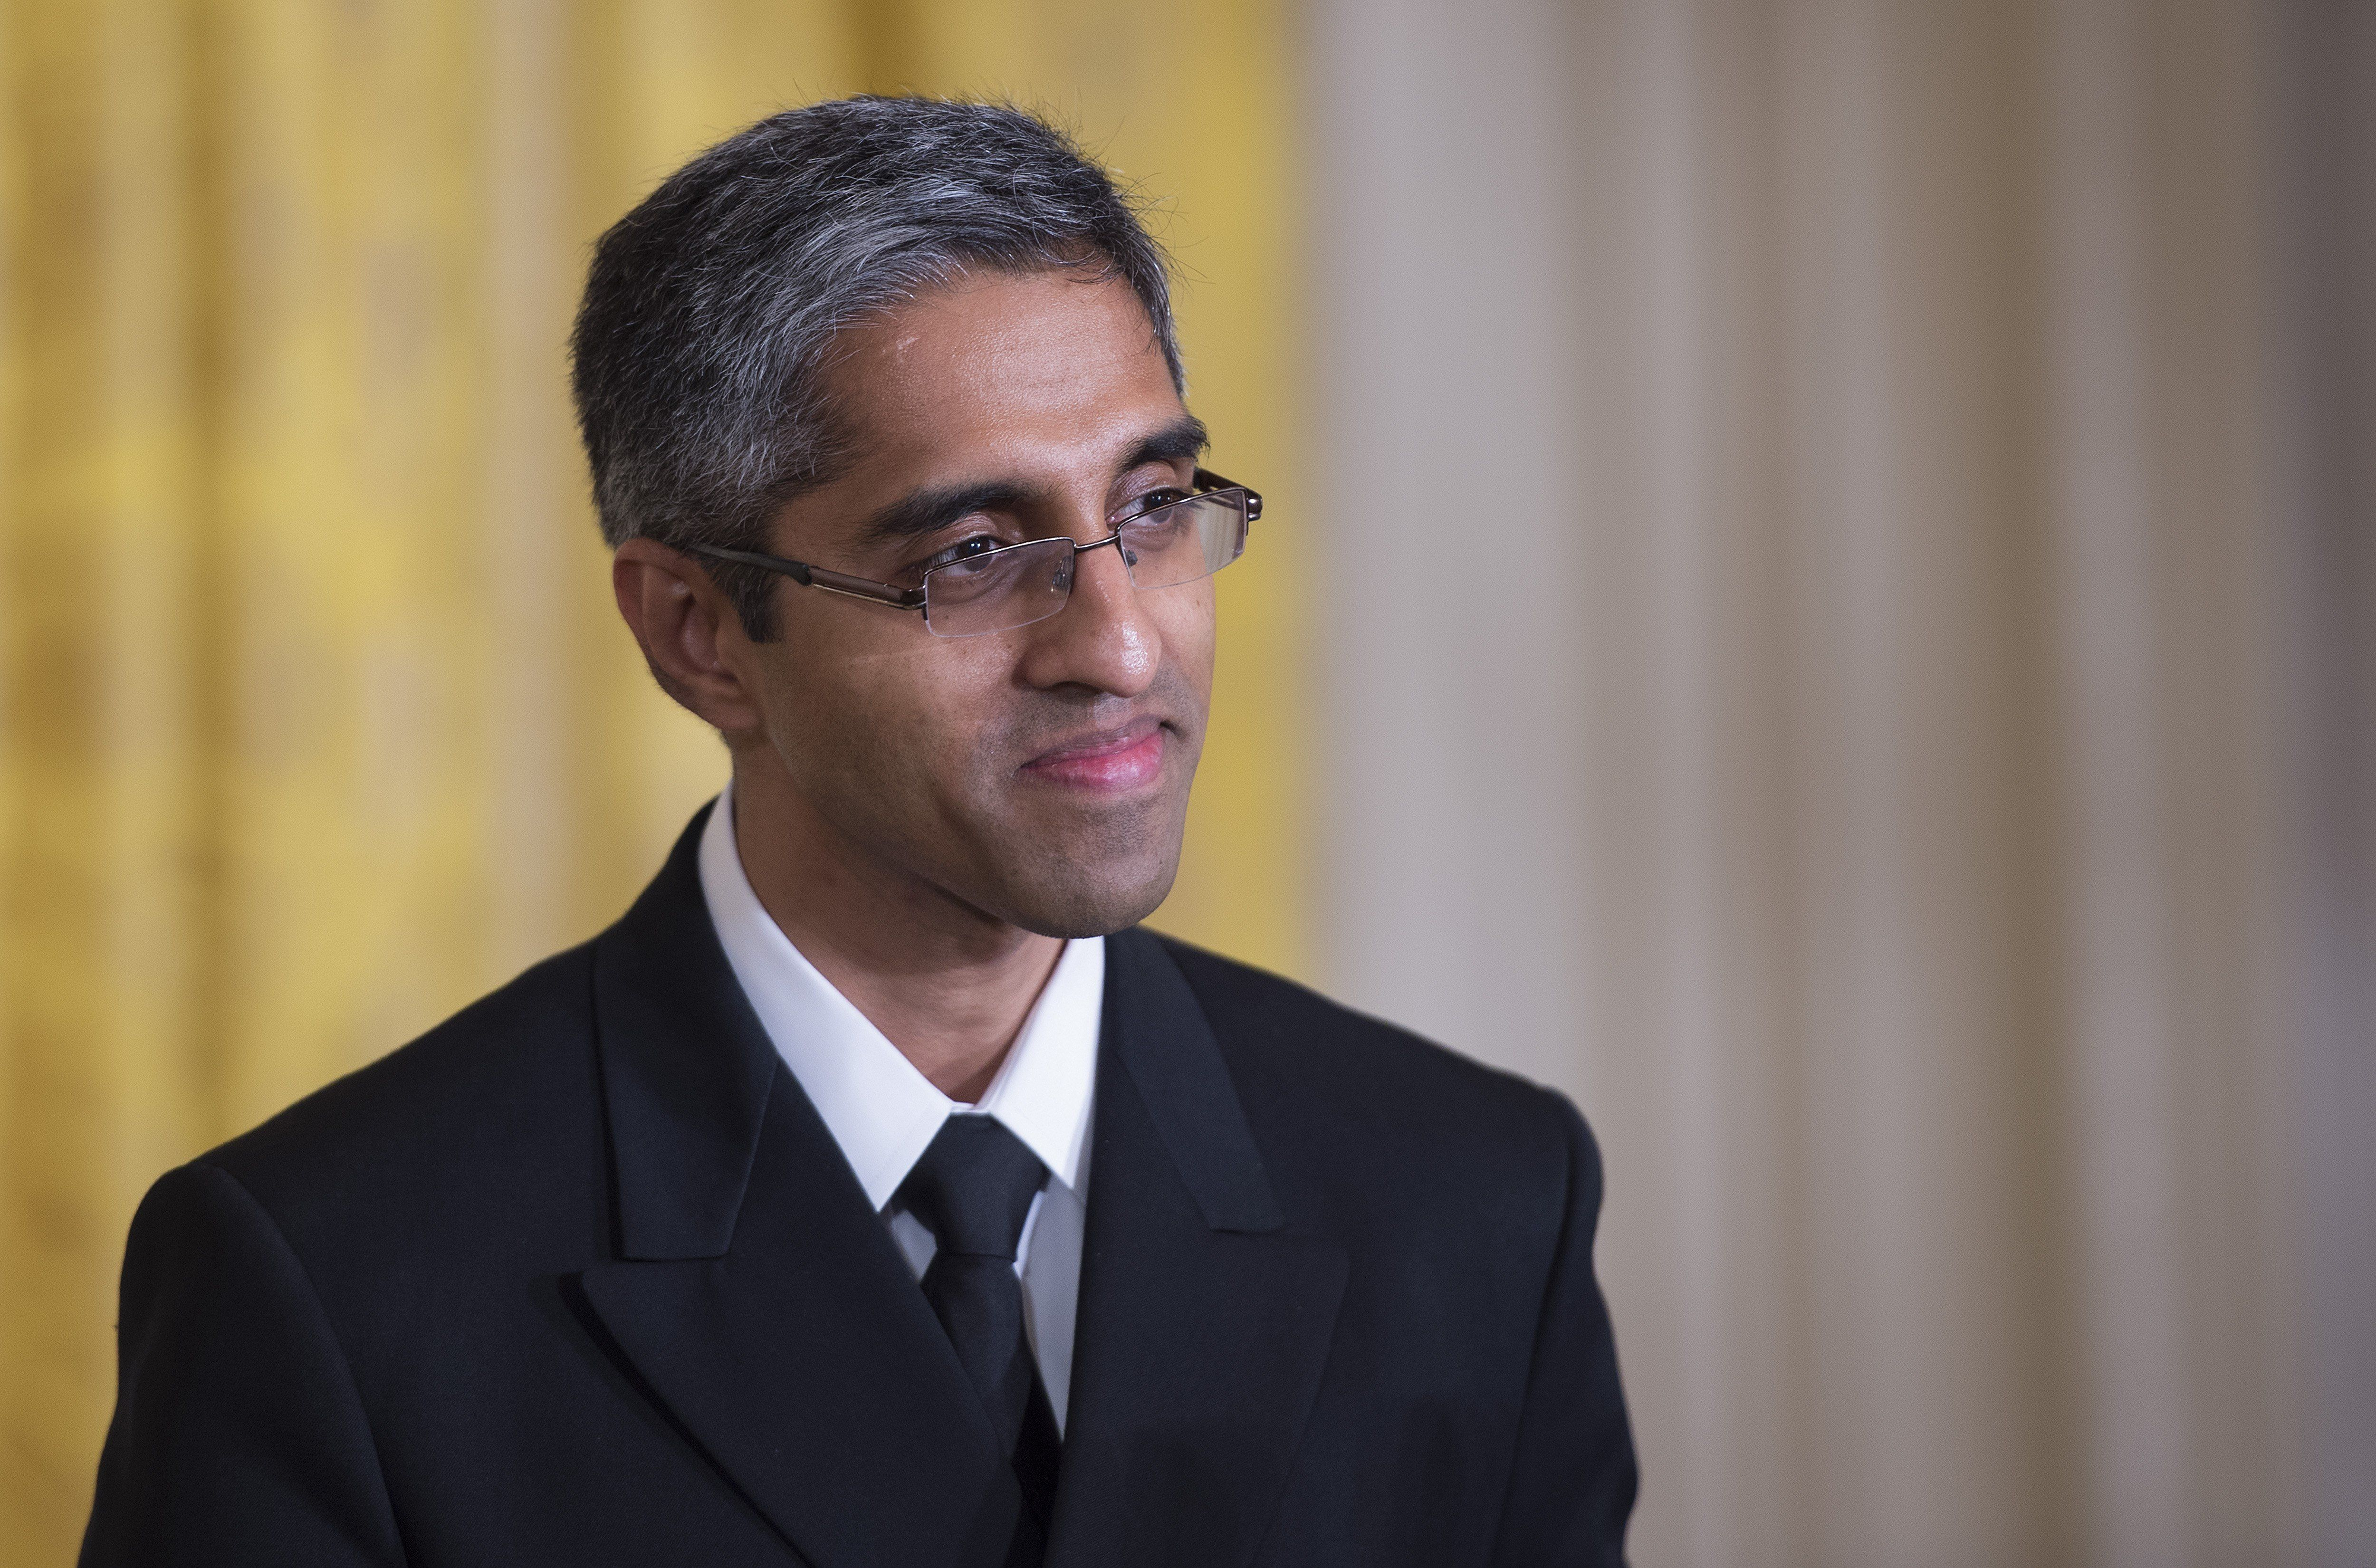 Surgeon General Vivek Murthy issued a letter to 2.3 million American health professionals Thursday, asking them to pledge commitment to combatting the United States' burgeoning opioid epidemic.